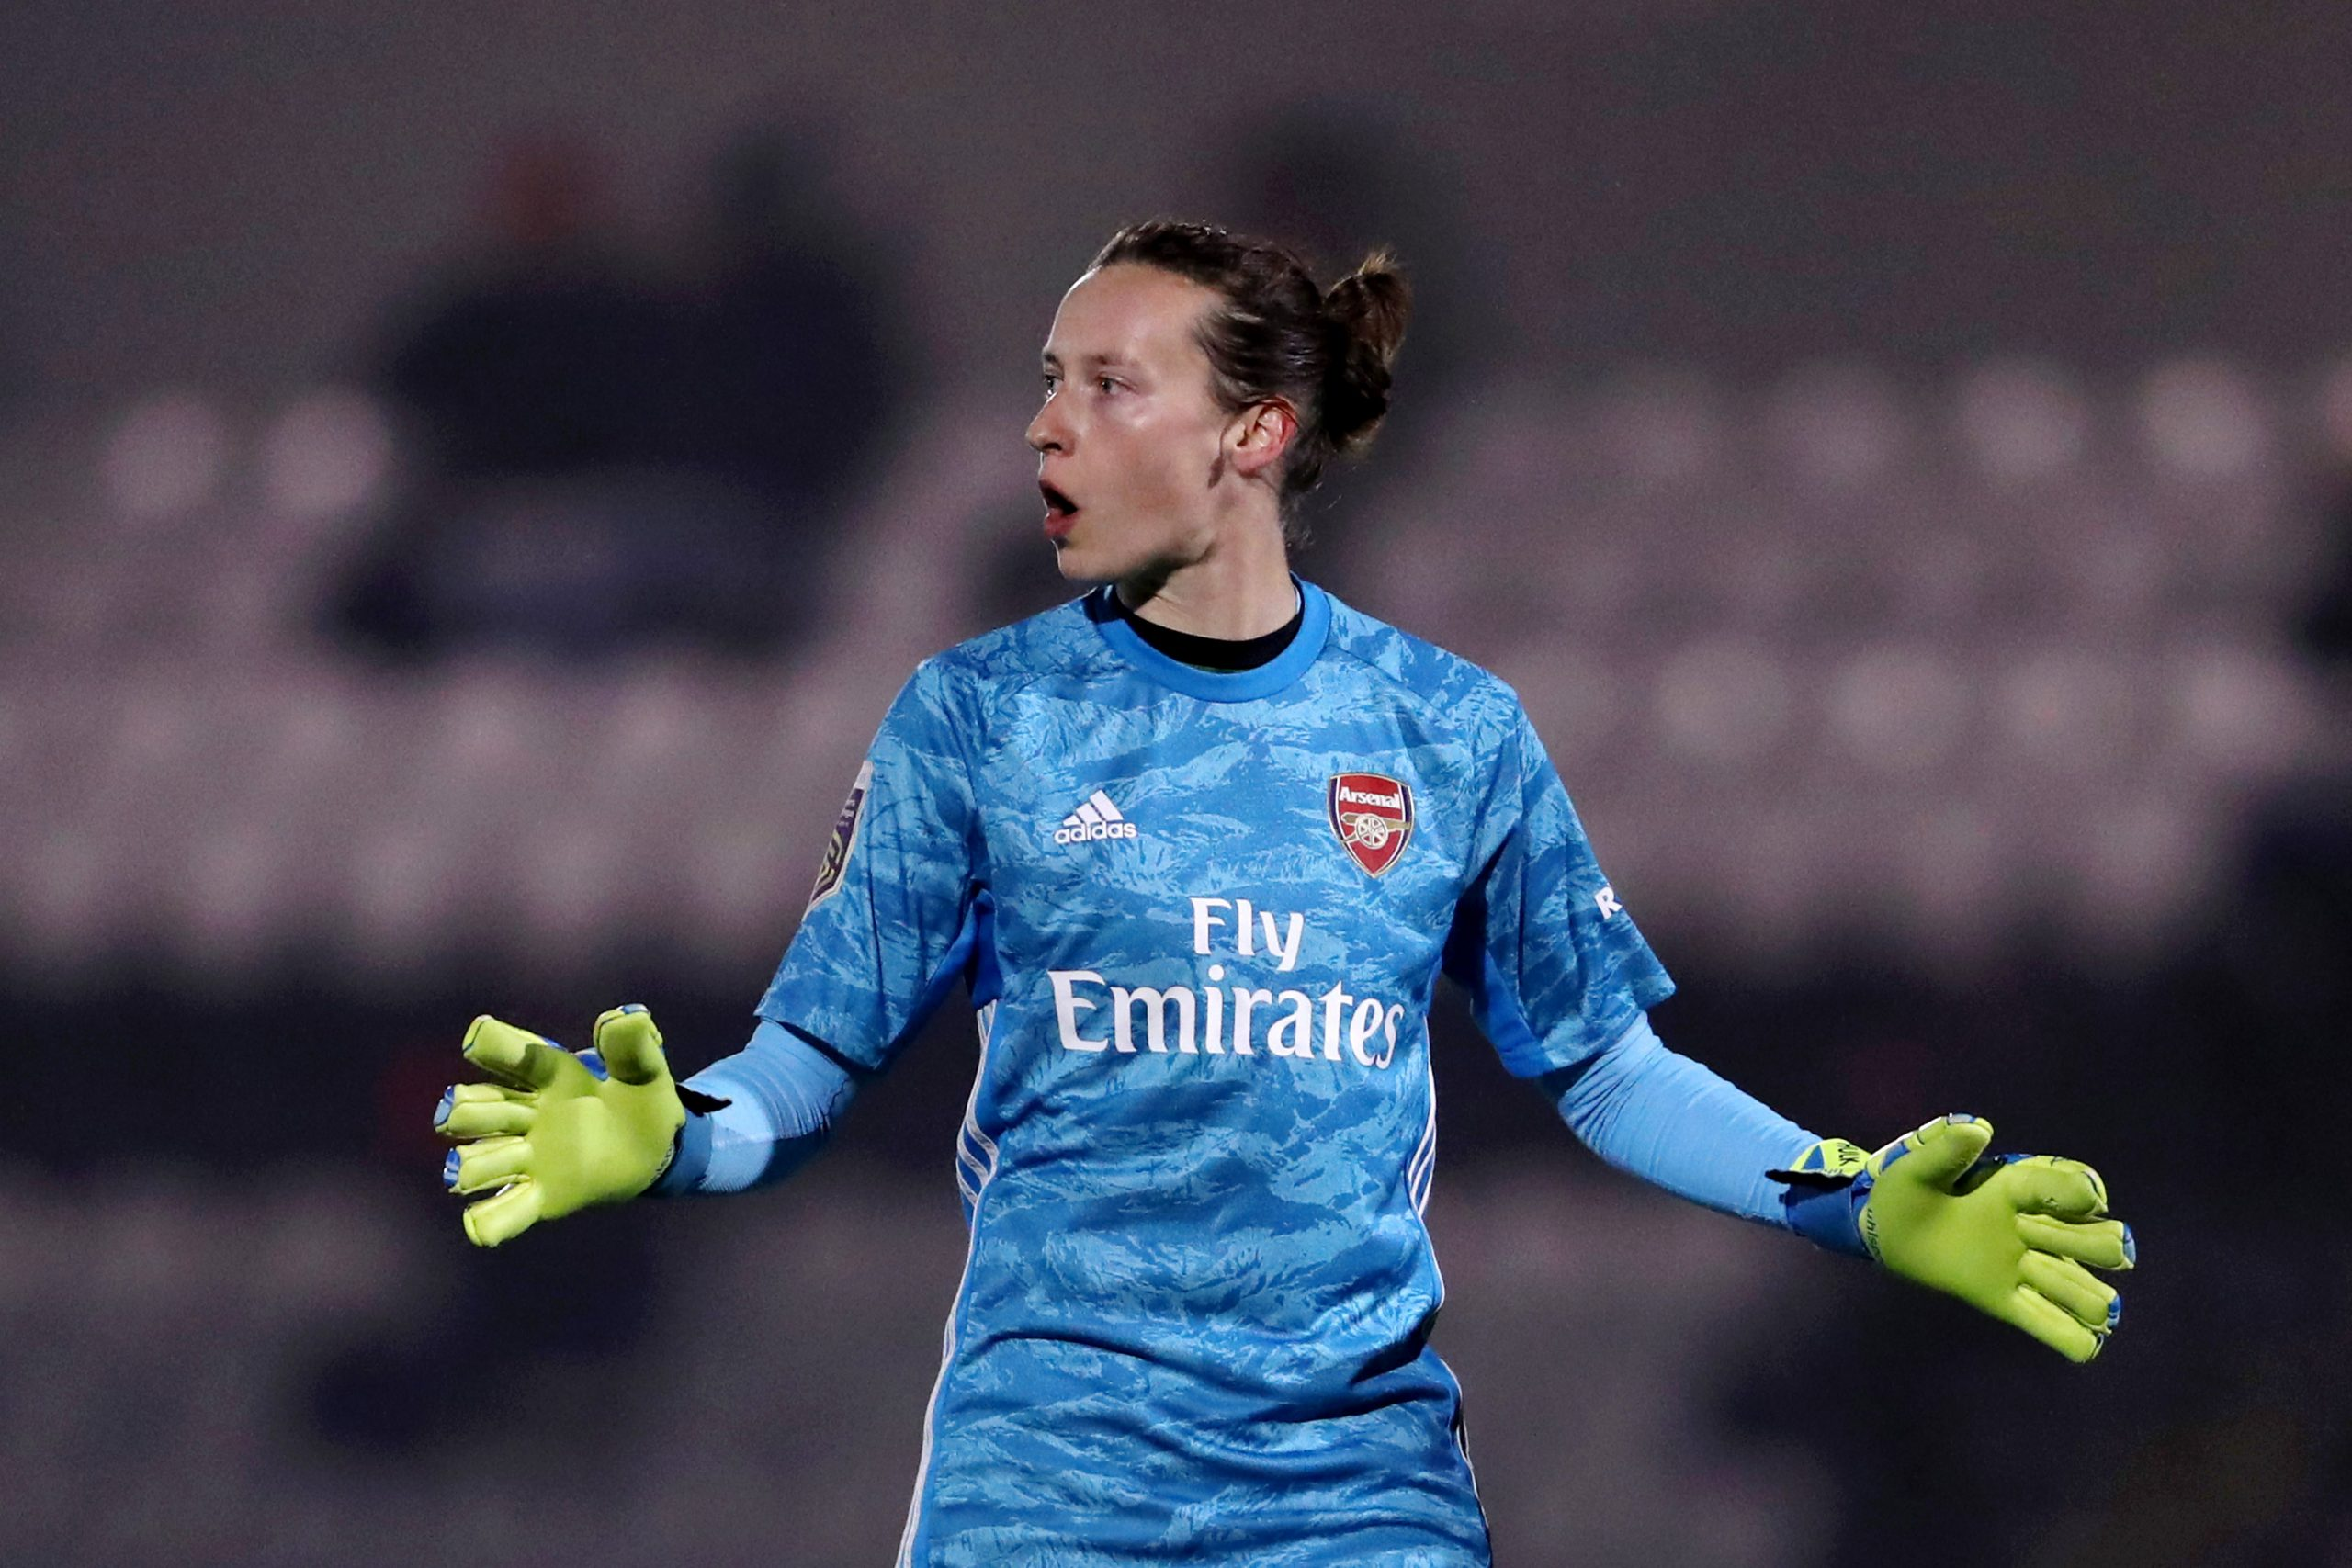 BOREHAMWOOD, ENGLAND - NOVEMBER 21: Pauline Peyraud-Magnin of Arsenal Women reacts during the FA Women's Continental League Cup game between Arsenal Women and Bristol City Women at Meadow Park on November 21, 2019 in Borehamwood, England. (Photo by Linnea Rheborg/Getty Images)